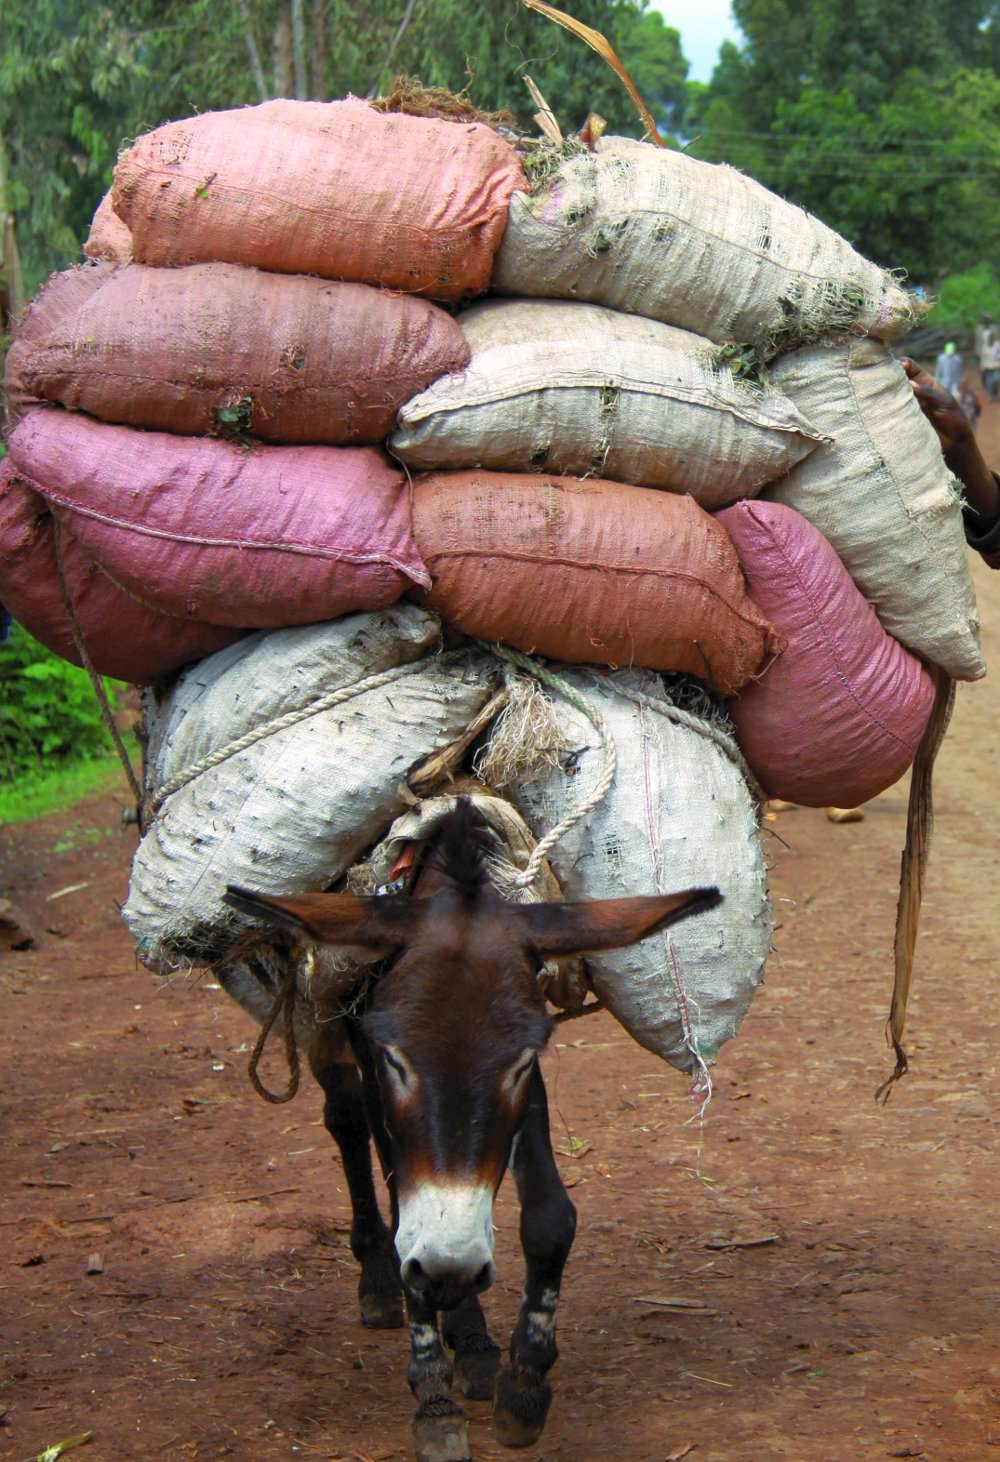 Working Donkey in Ethiopia